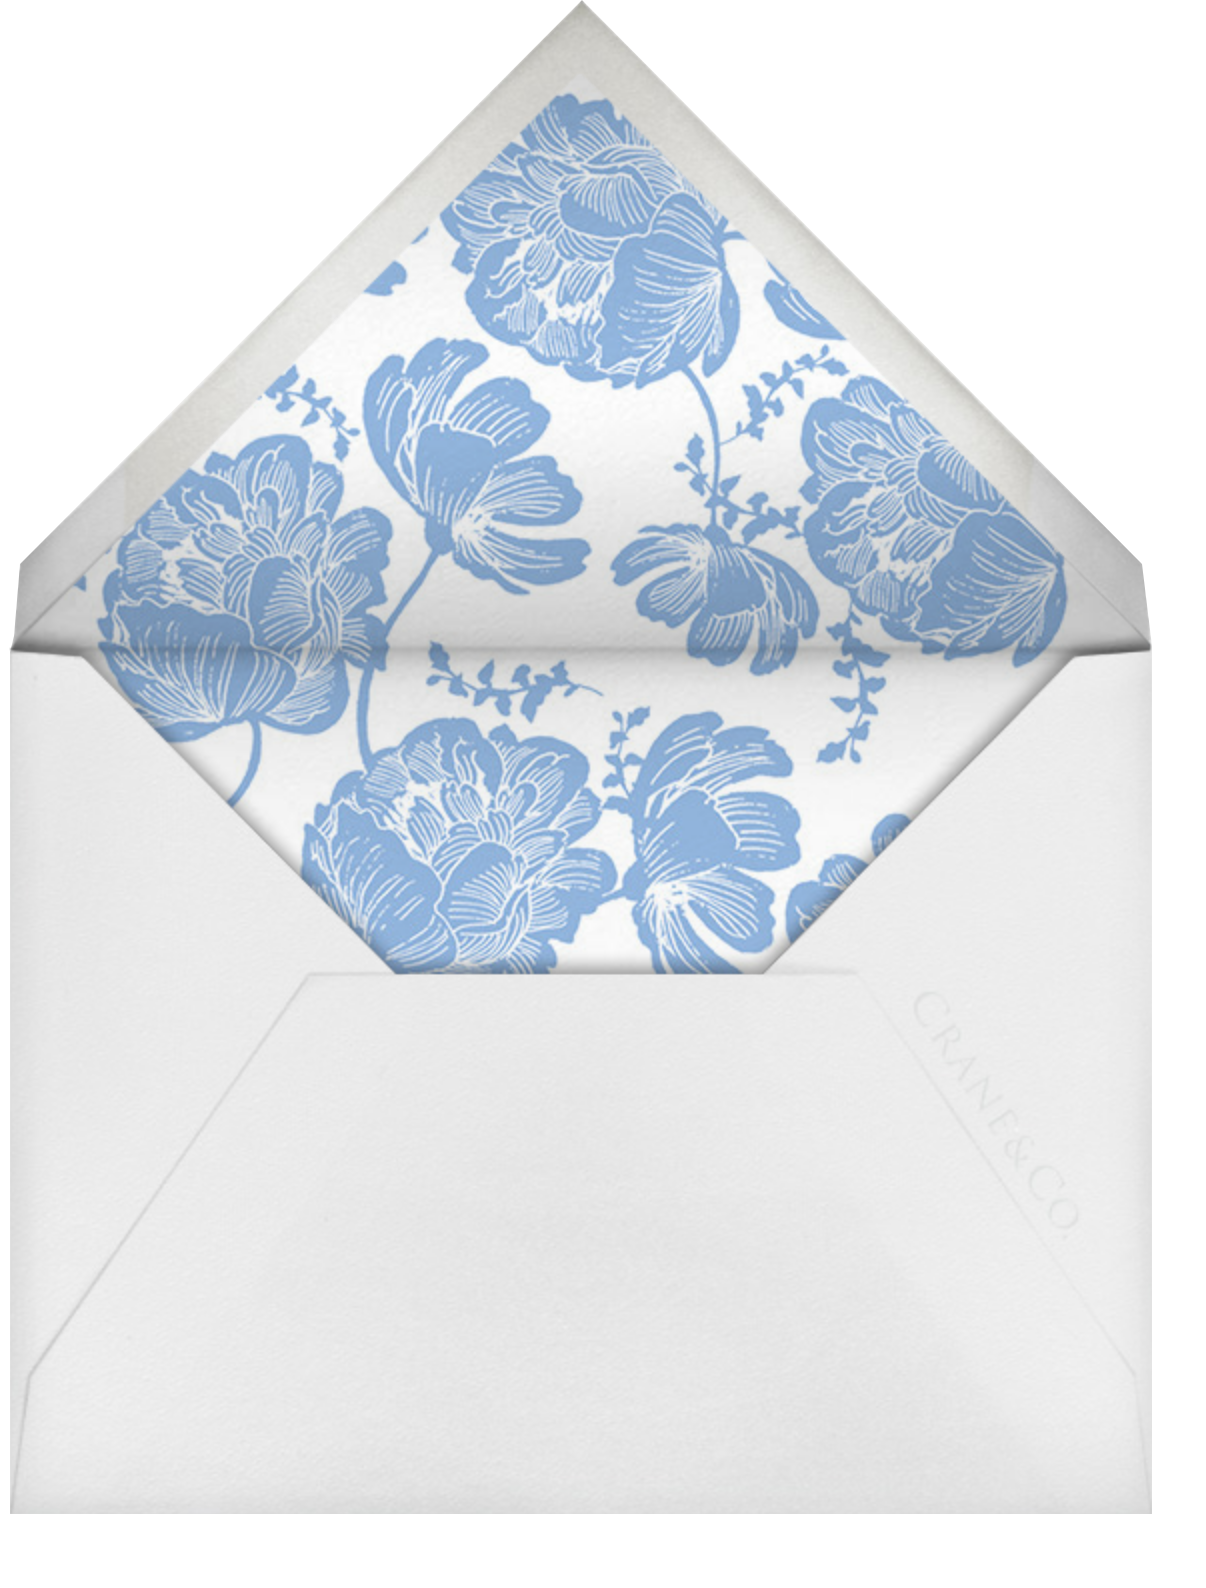 Audrey I (Save The Date) - Newport Blue - Paperless Post - Save the date - envelope back